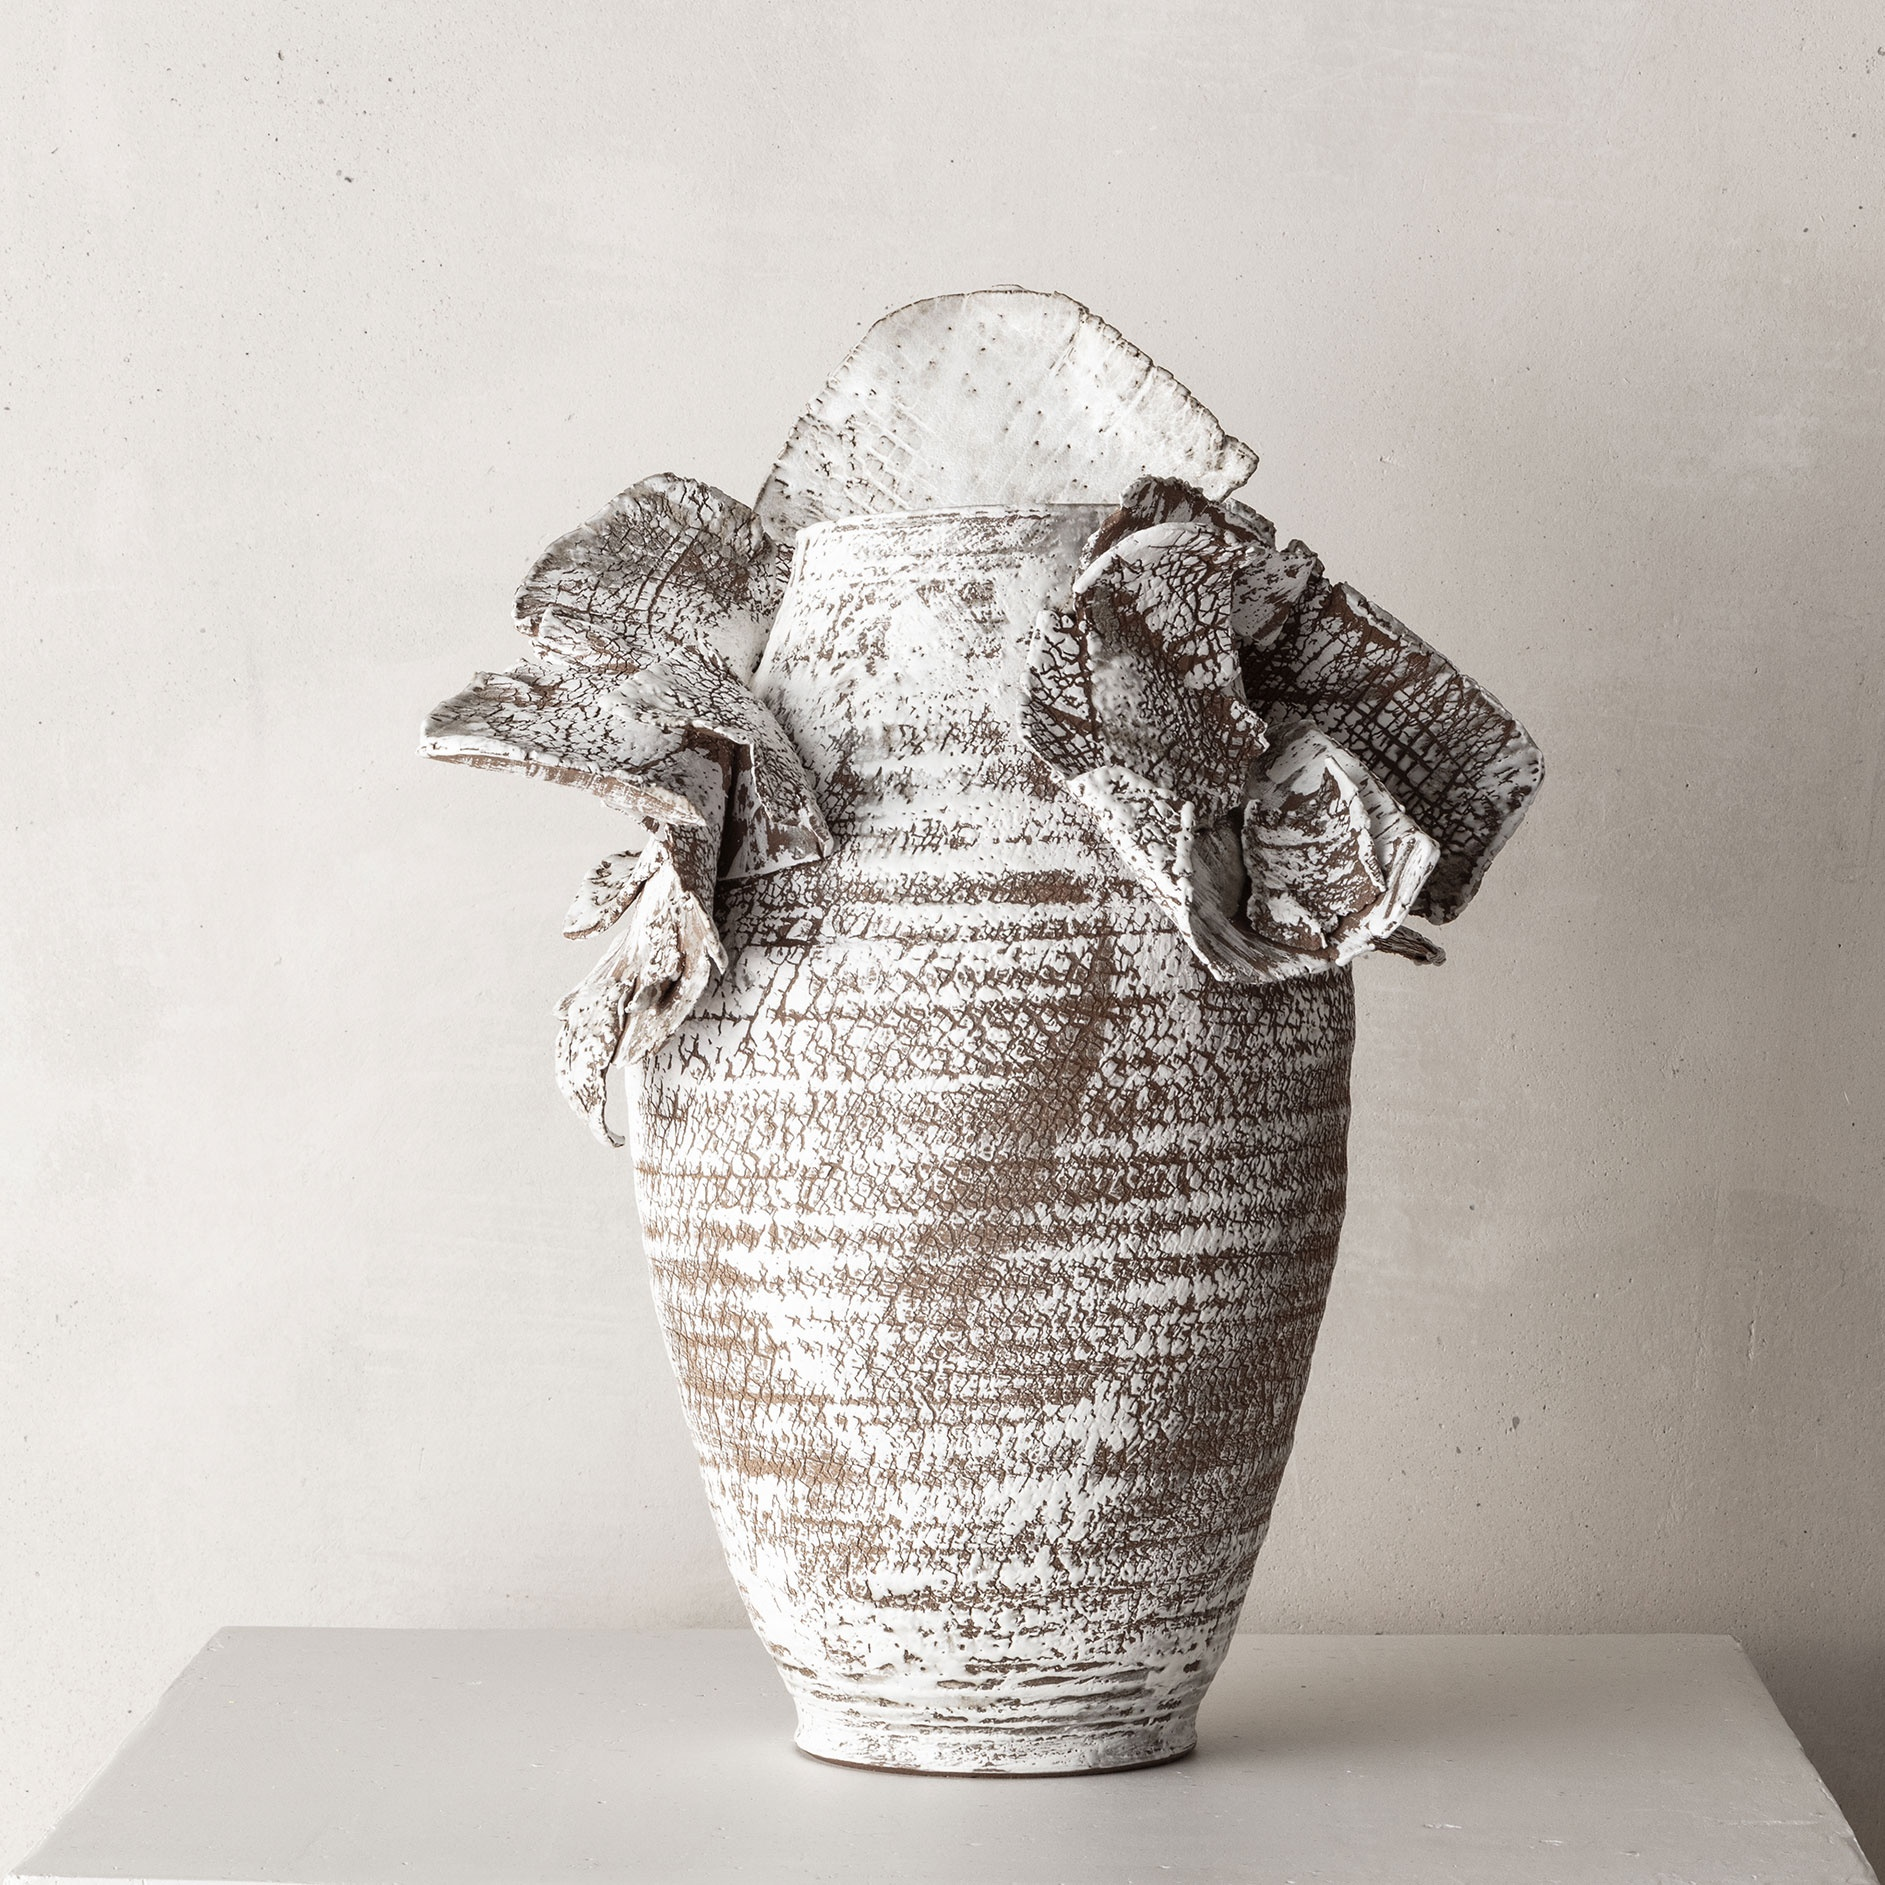 CHTHONIC VESSEL 03Peter Speliopoulos, Peter Speliopoulos Ceramics, Peter Speliopoulos Artist, Peter Speliopoulos Fashion Designer, Contemporary Ceramics, Contemporary Greek Ceramics, Interior Design Accessories.